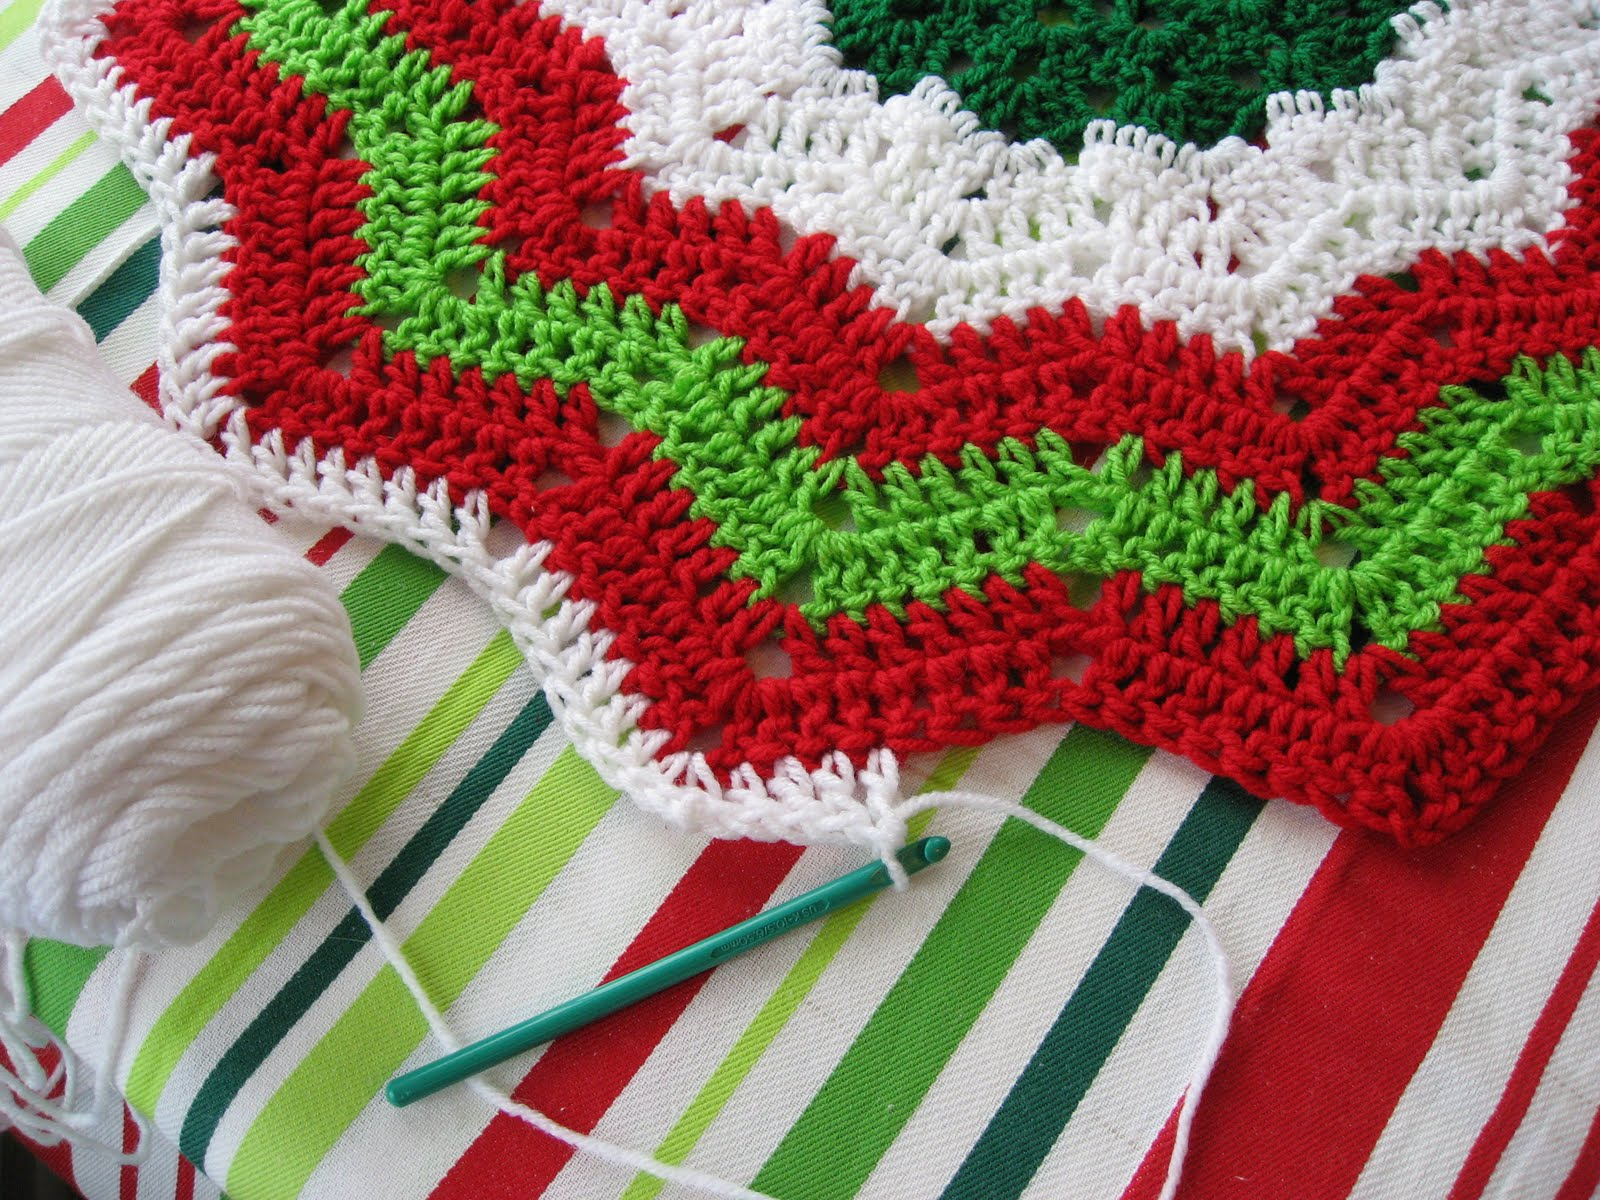 crochet pattern The crochet shell stitch is created by working a number of crochet stitches together in one stitch, which causes them to fan out and 14 crochet tutorials february 8, 2018.